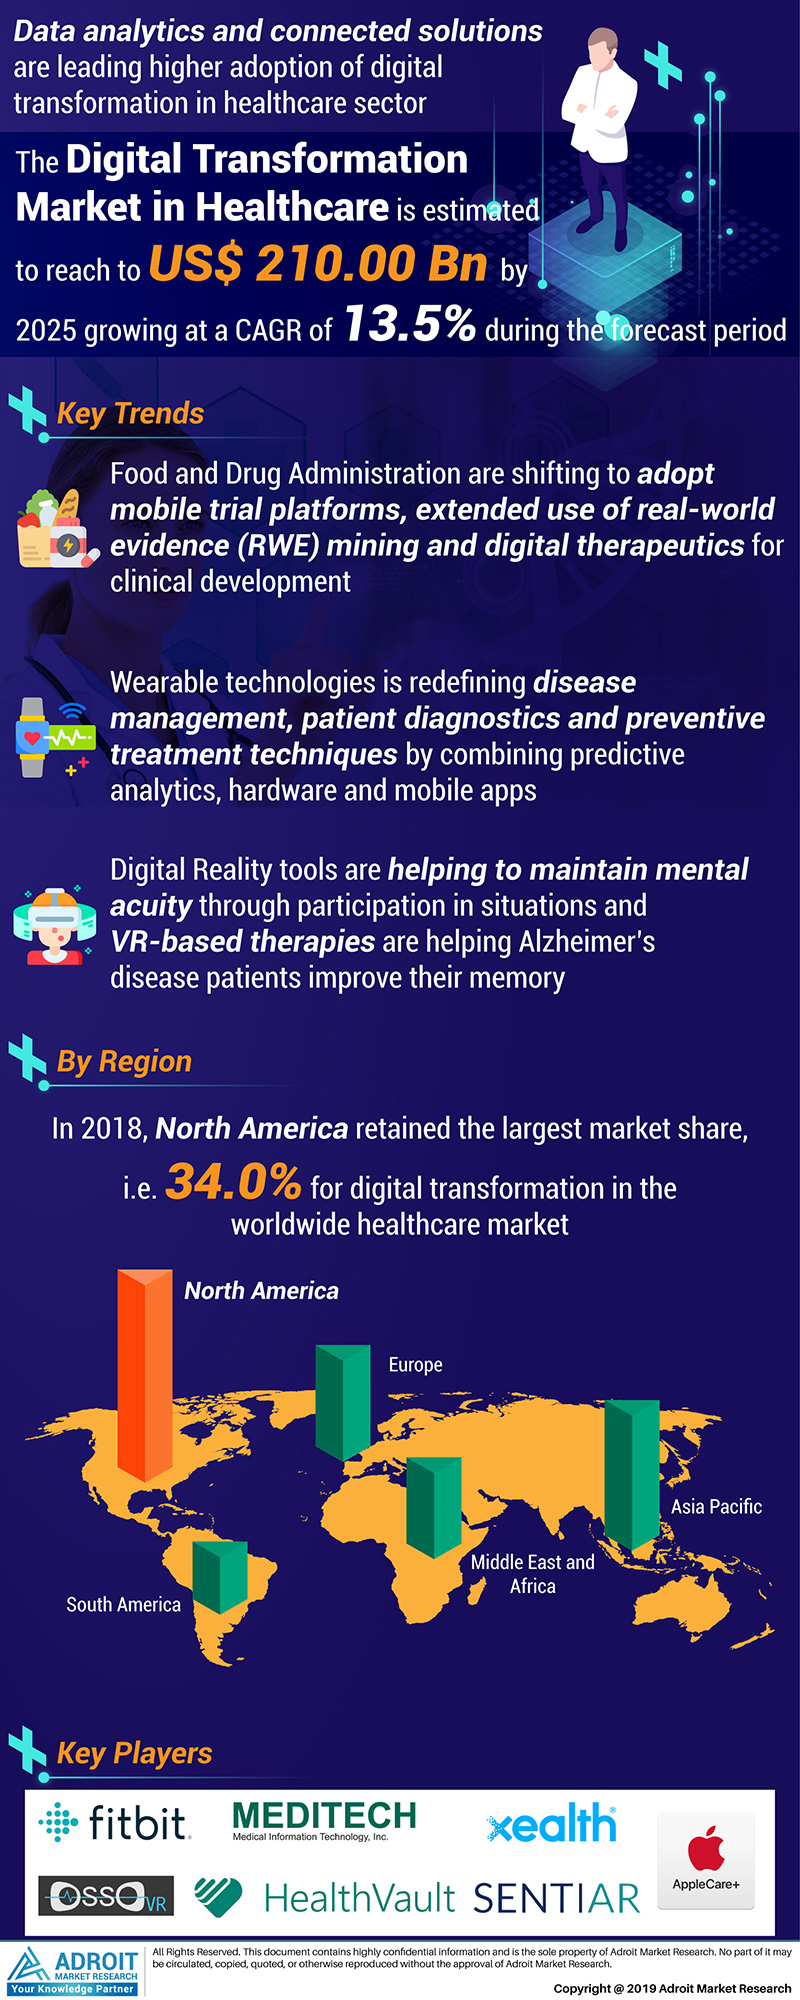 Global Digital Transformation in Healthcare Market Size 2017 By Region and Forecast 2019 to 2025